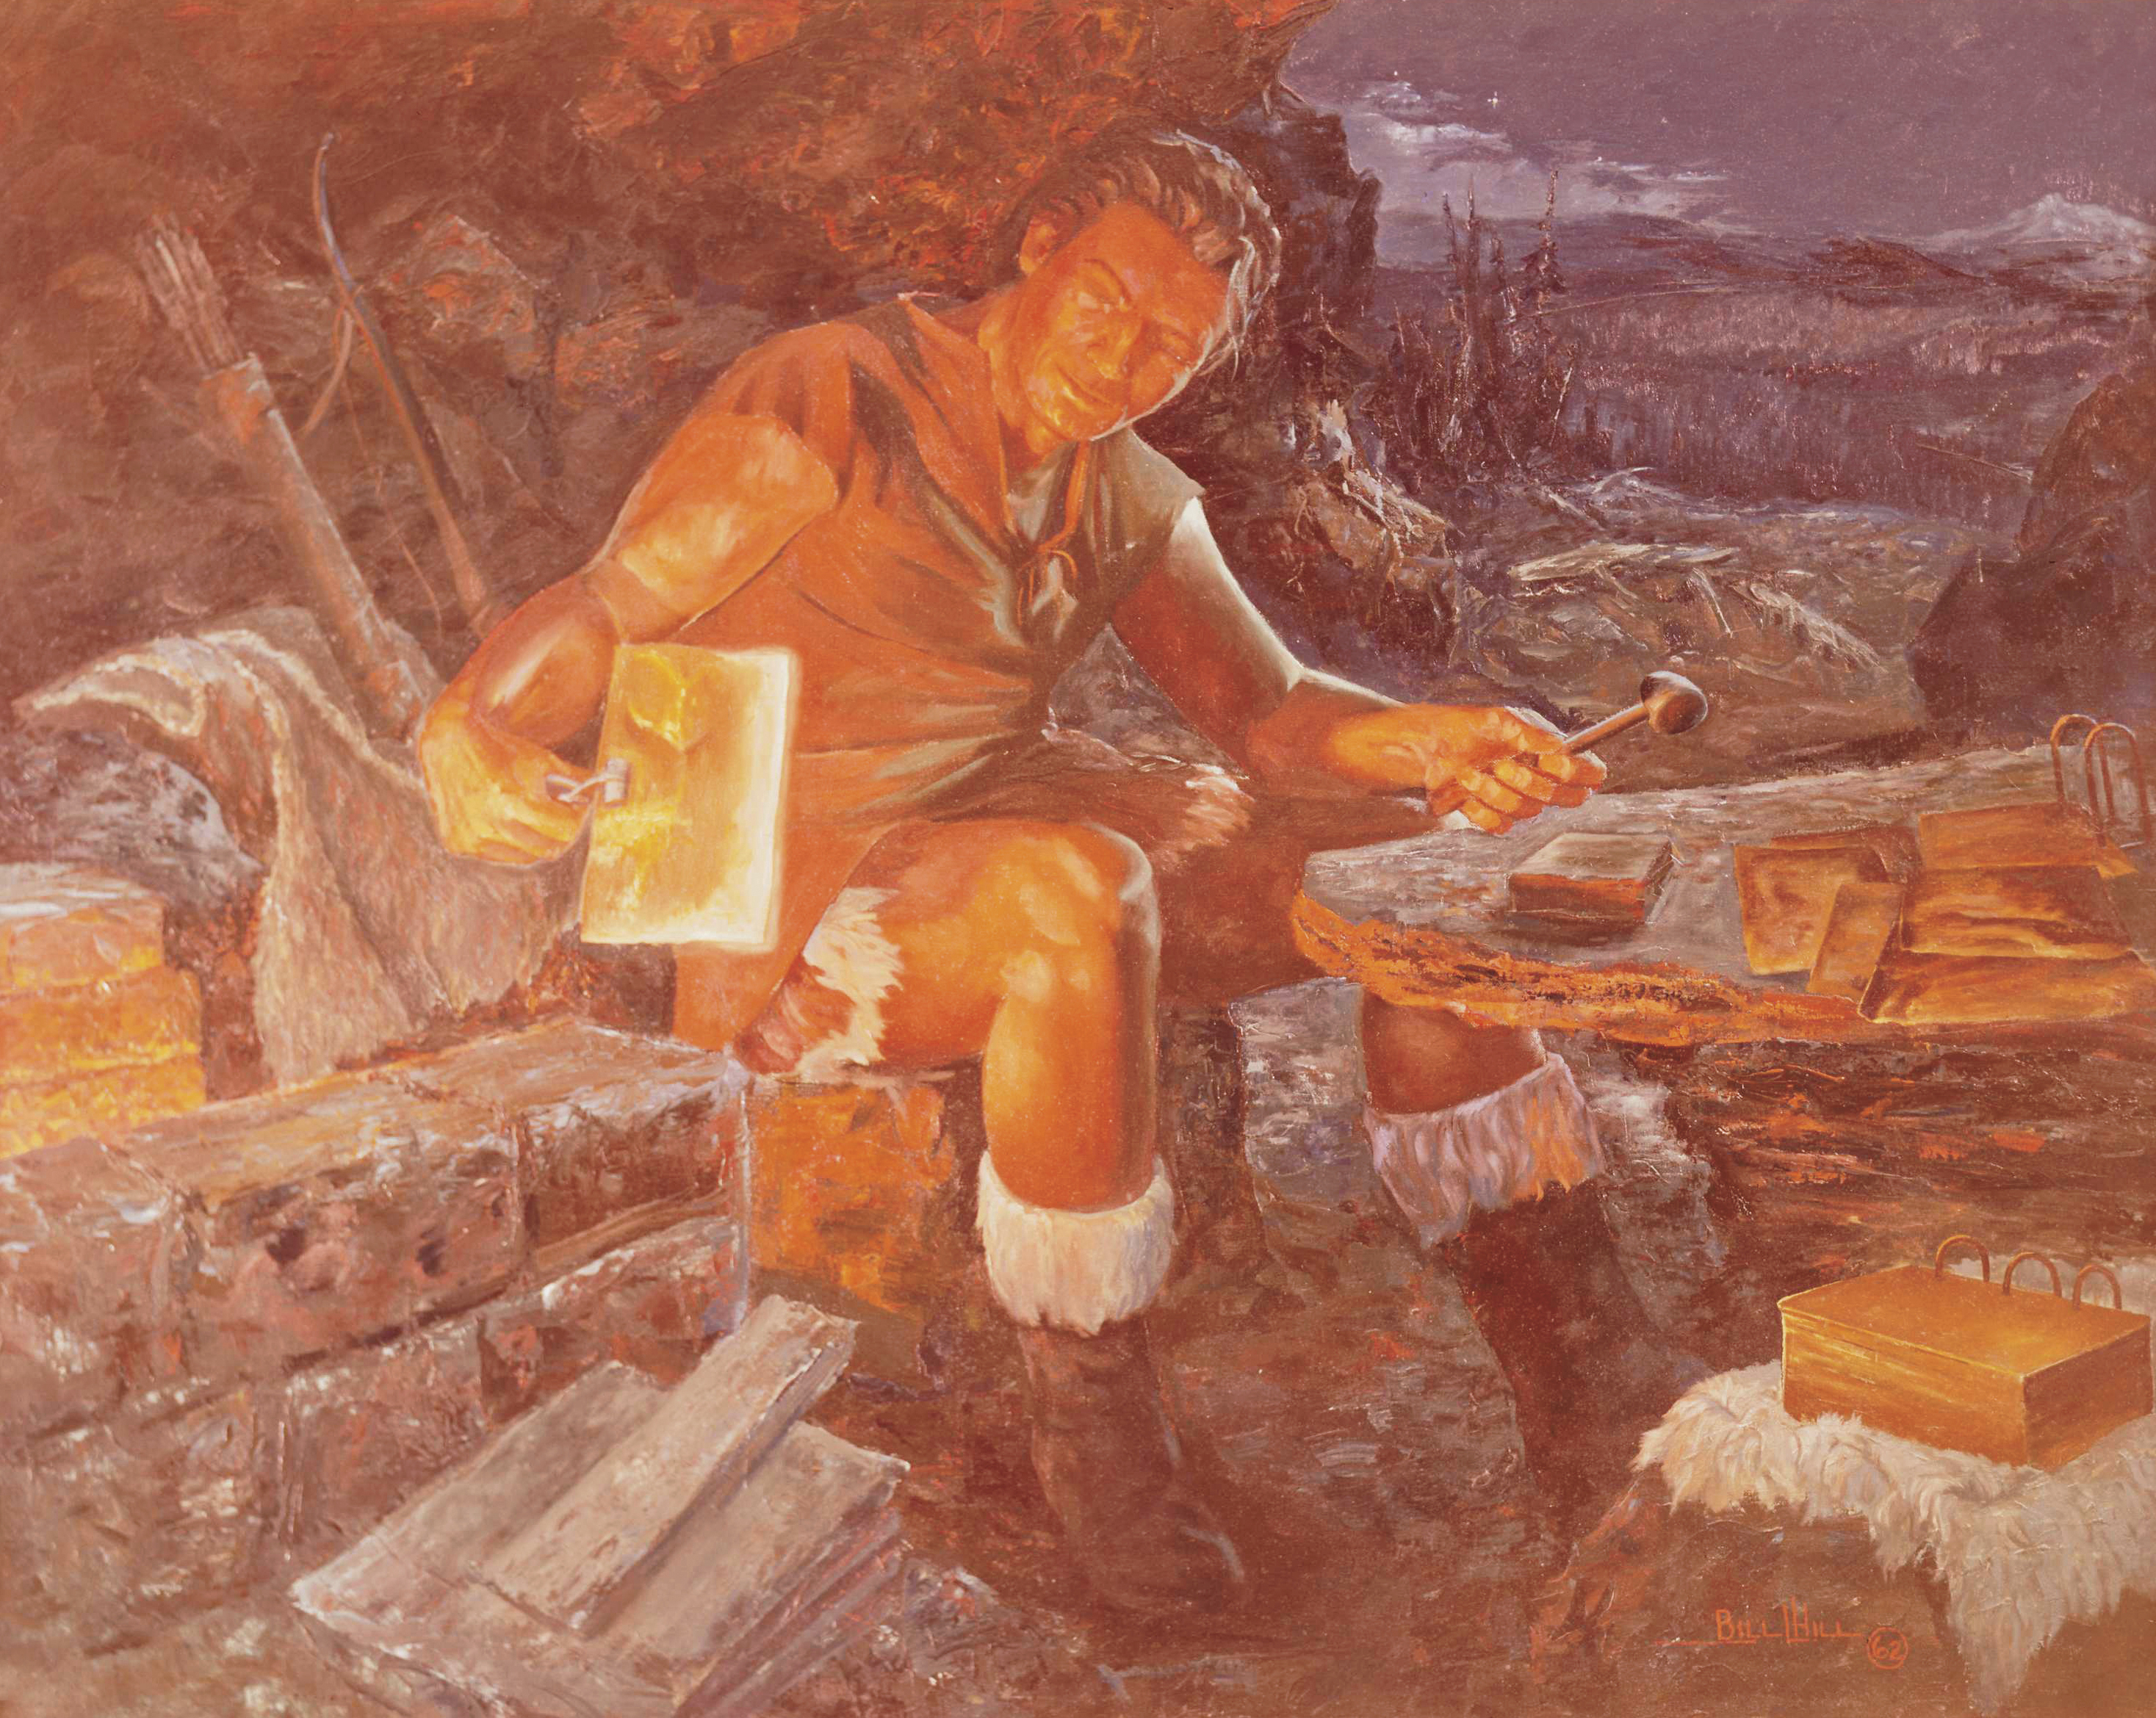 Nephi Fashioning the Plates, by Bill L. Hill